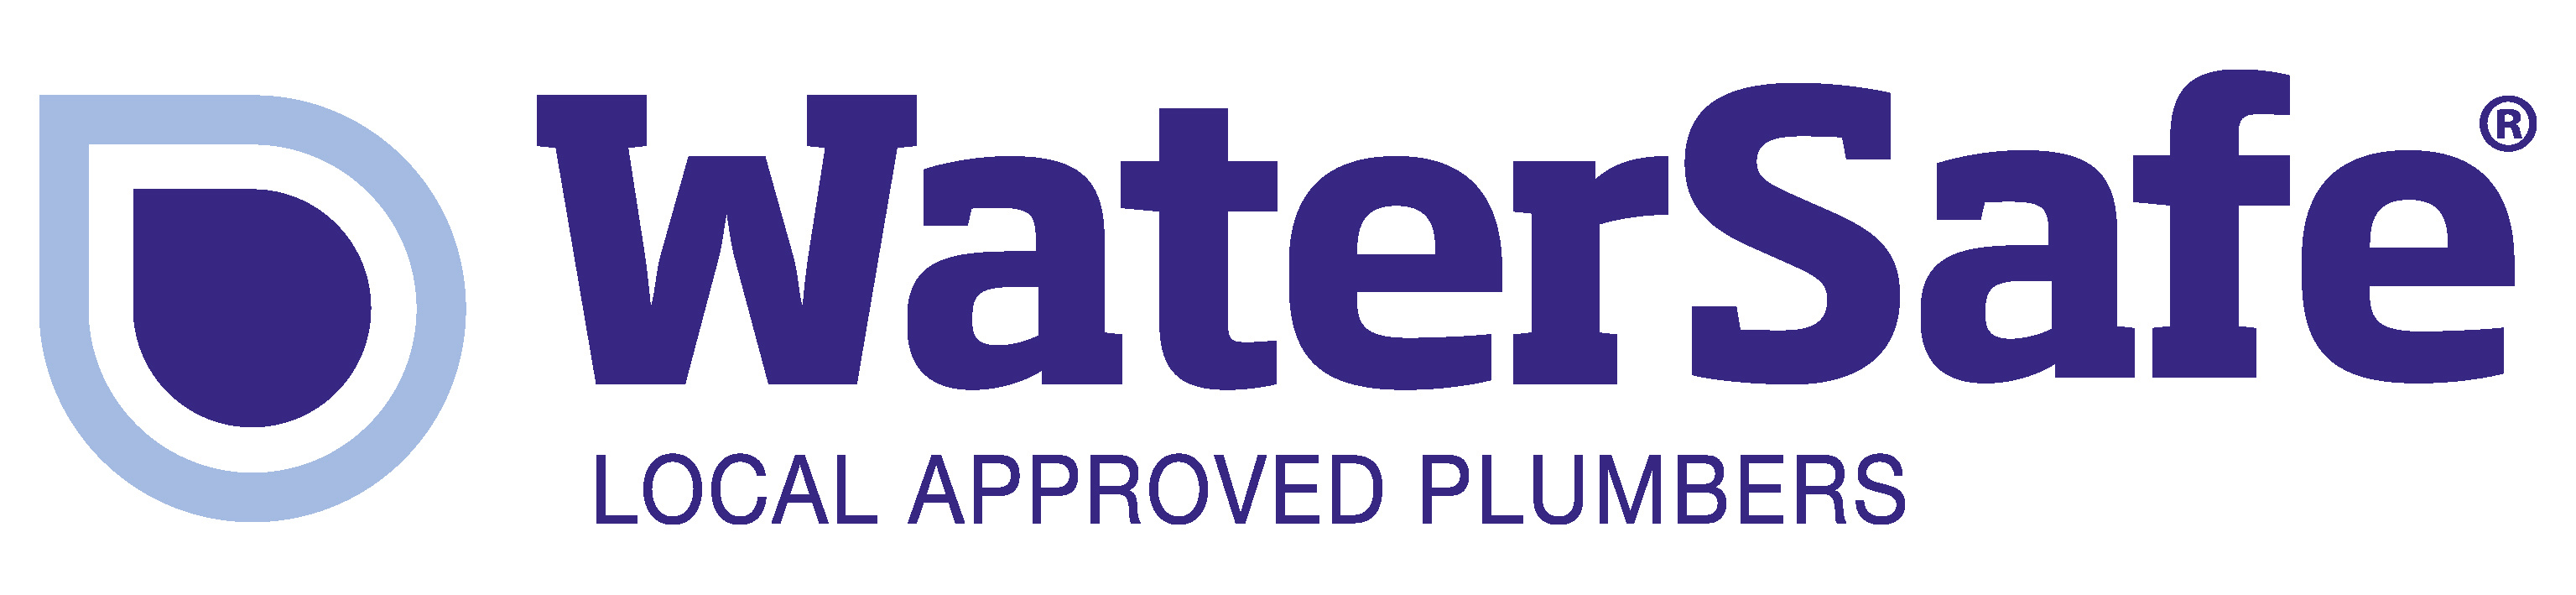 WaterSafe Local, Approved Plumbers CMYK